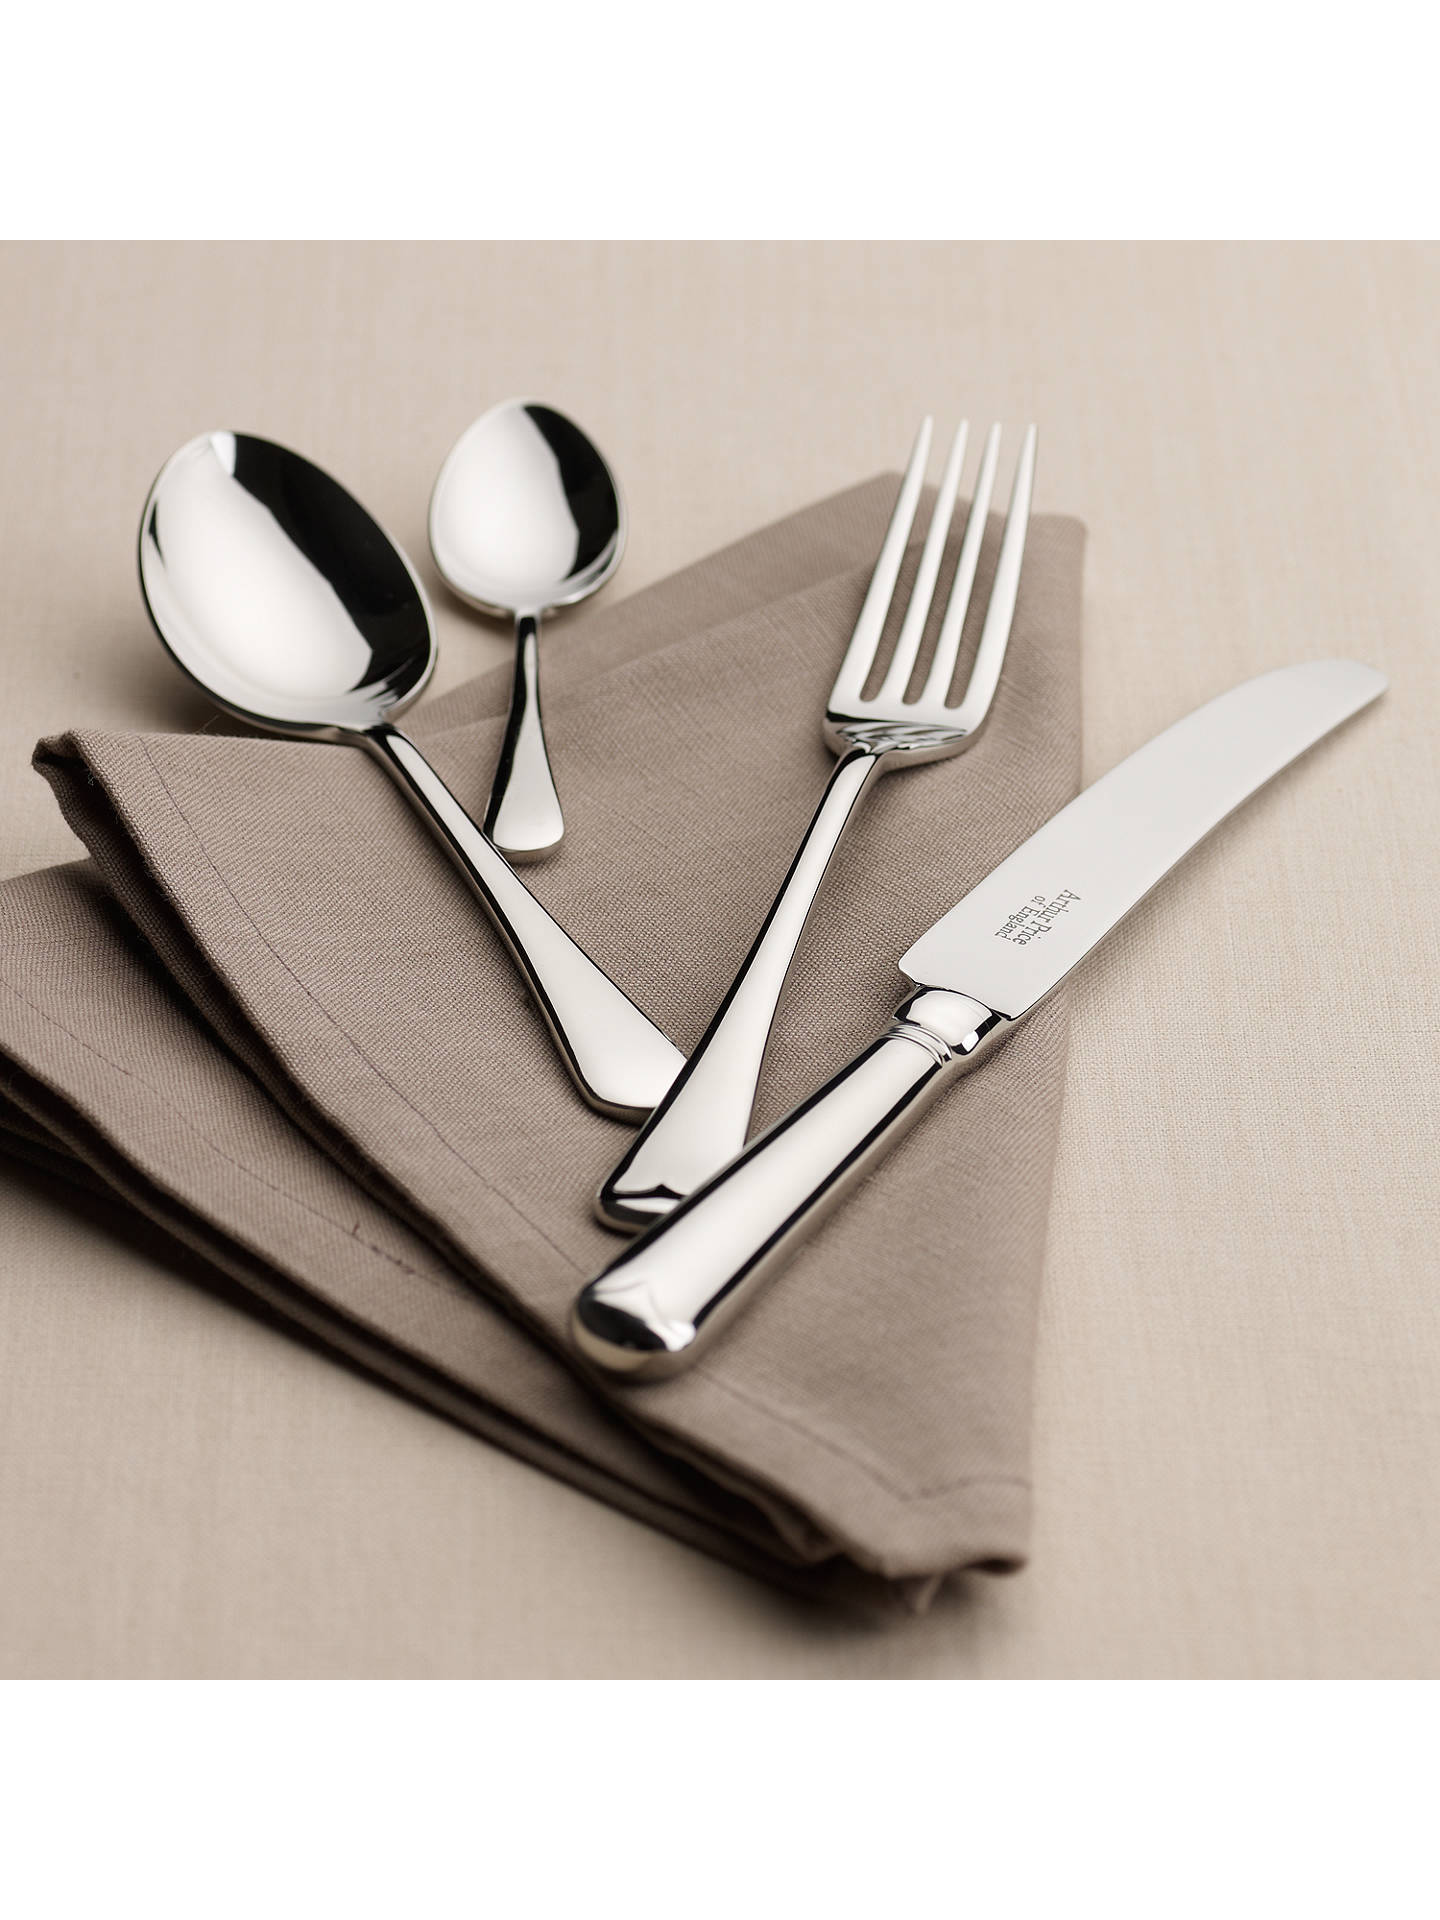 BuyArthur Price Old English Cutlery Set, 24 Piece Online at johnlewis.com